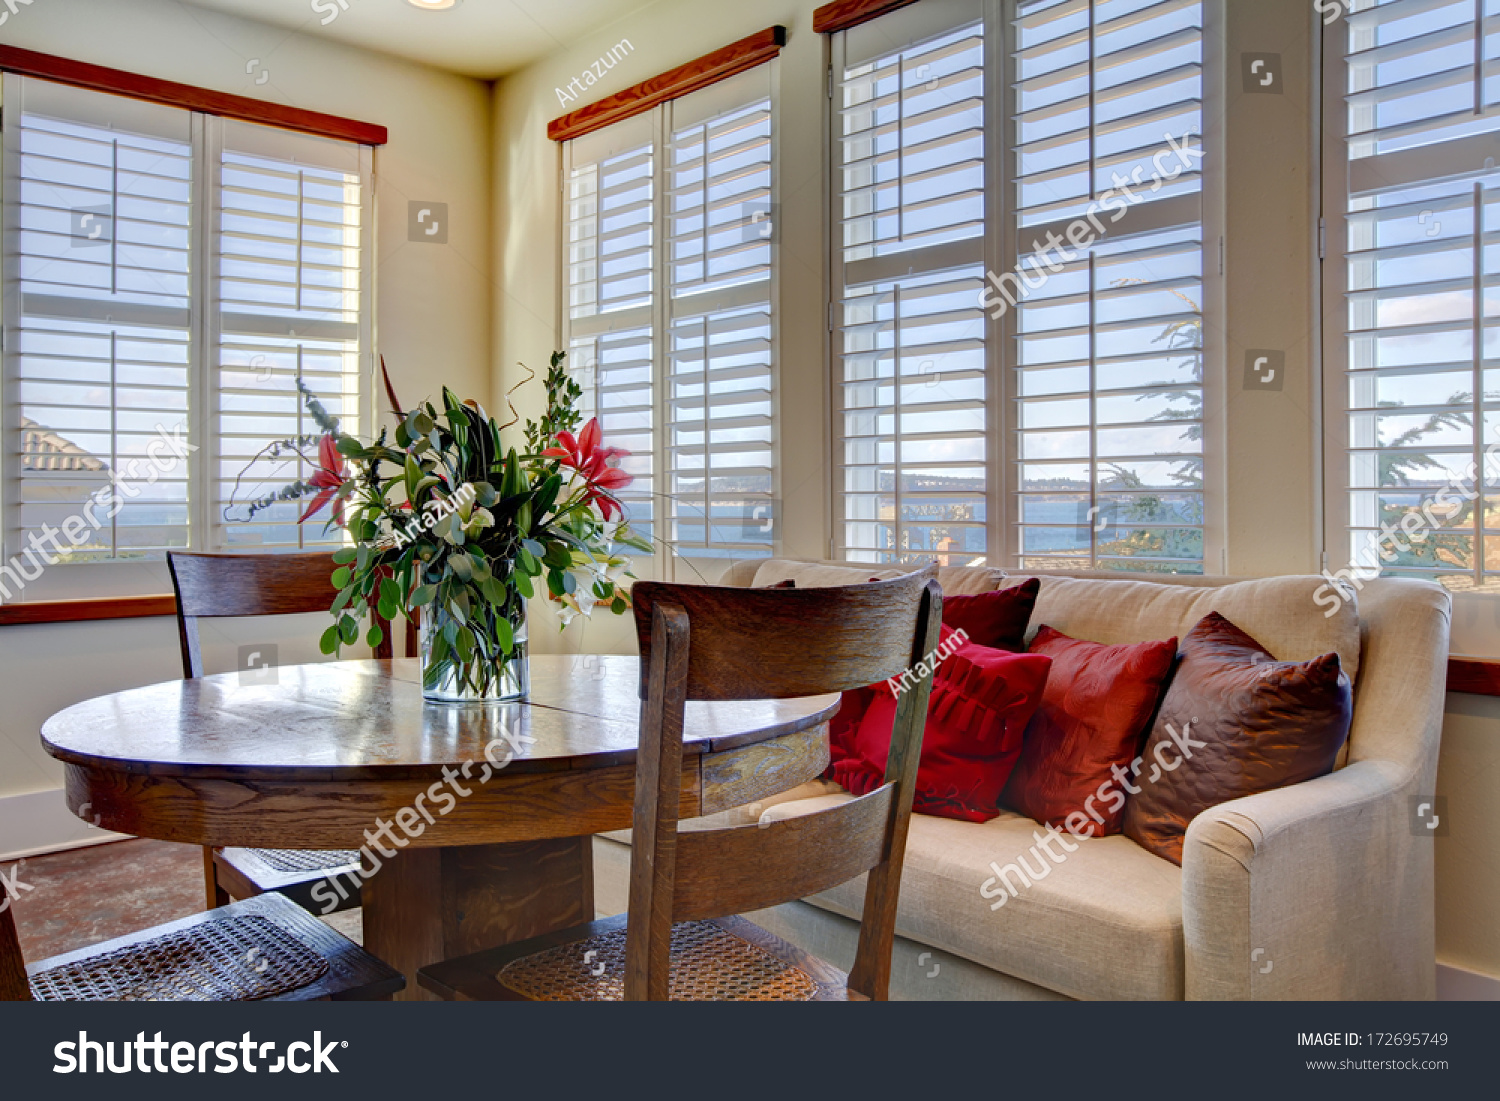 Light tones beautiful dining area with a rustic dining for Beautiful dining area